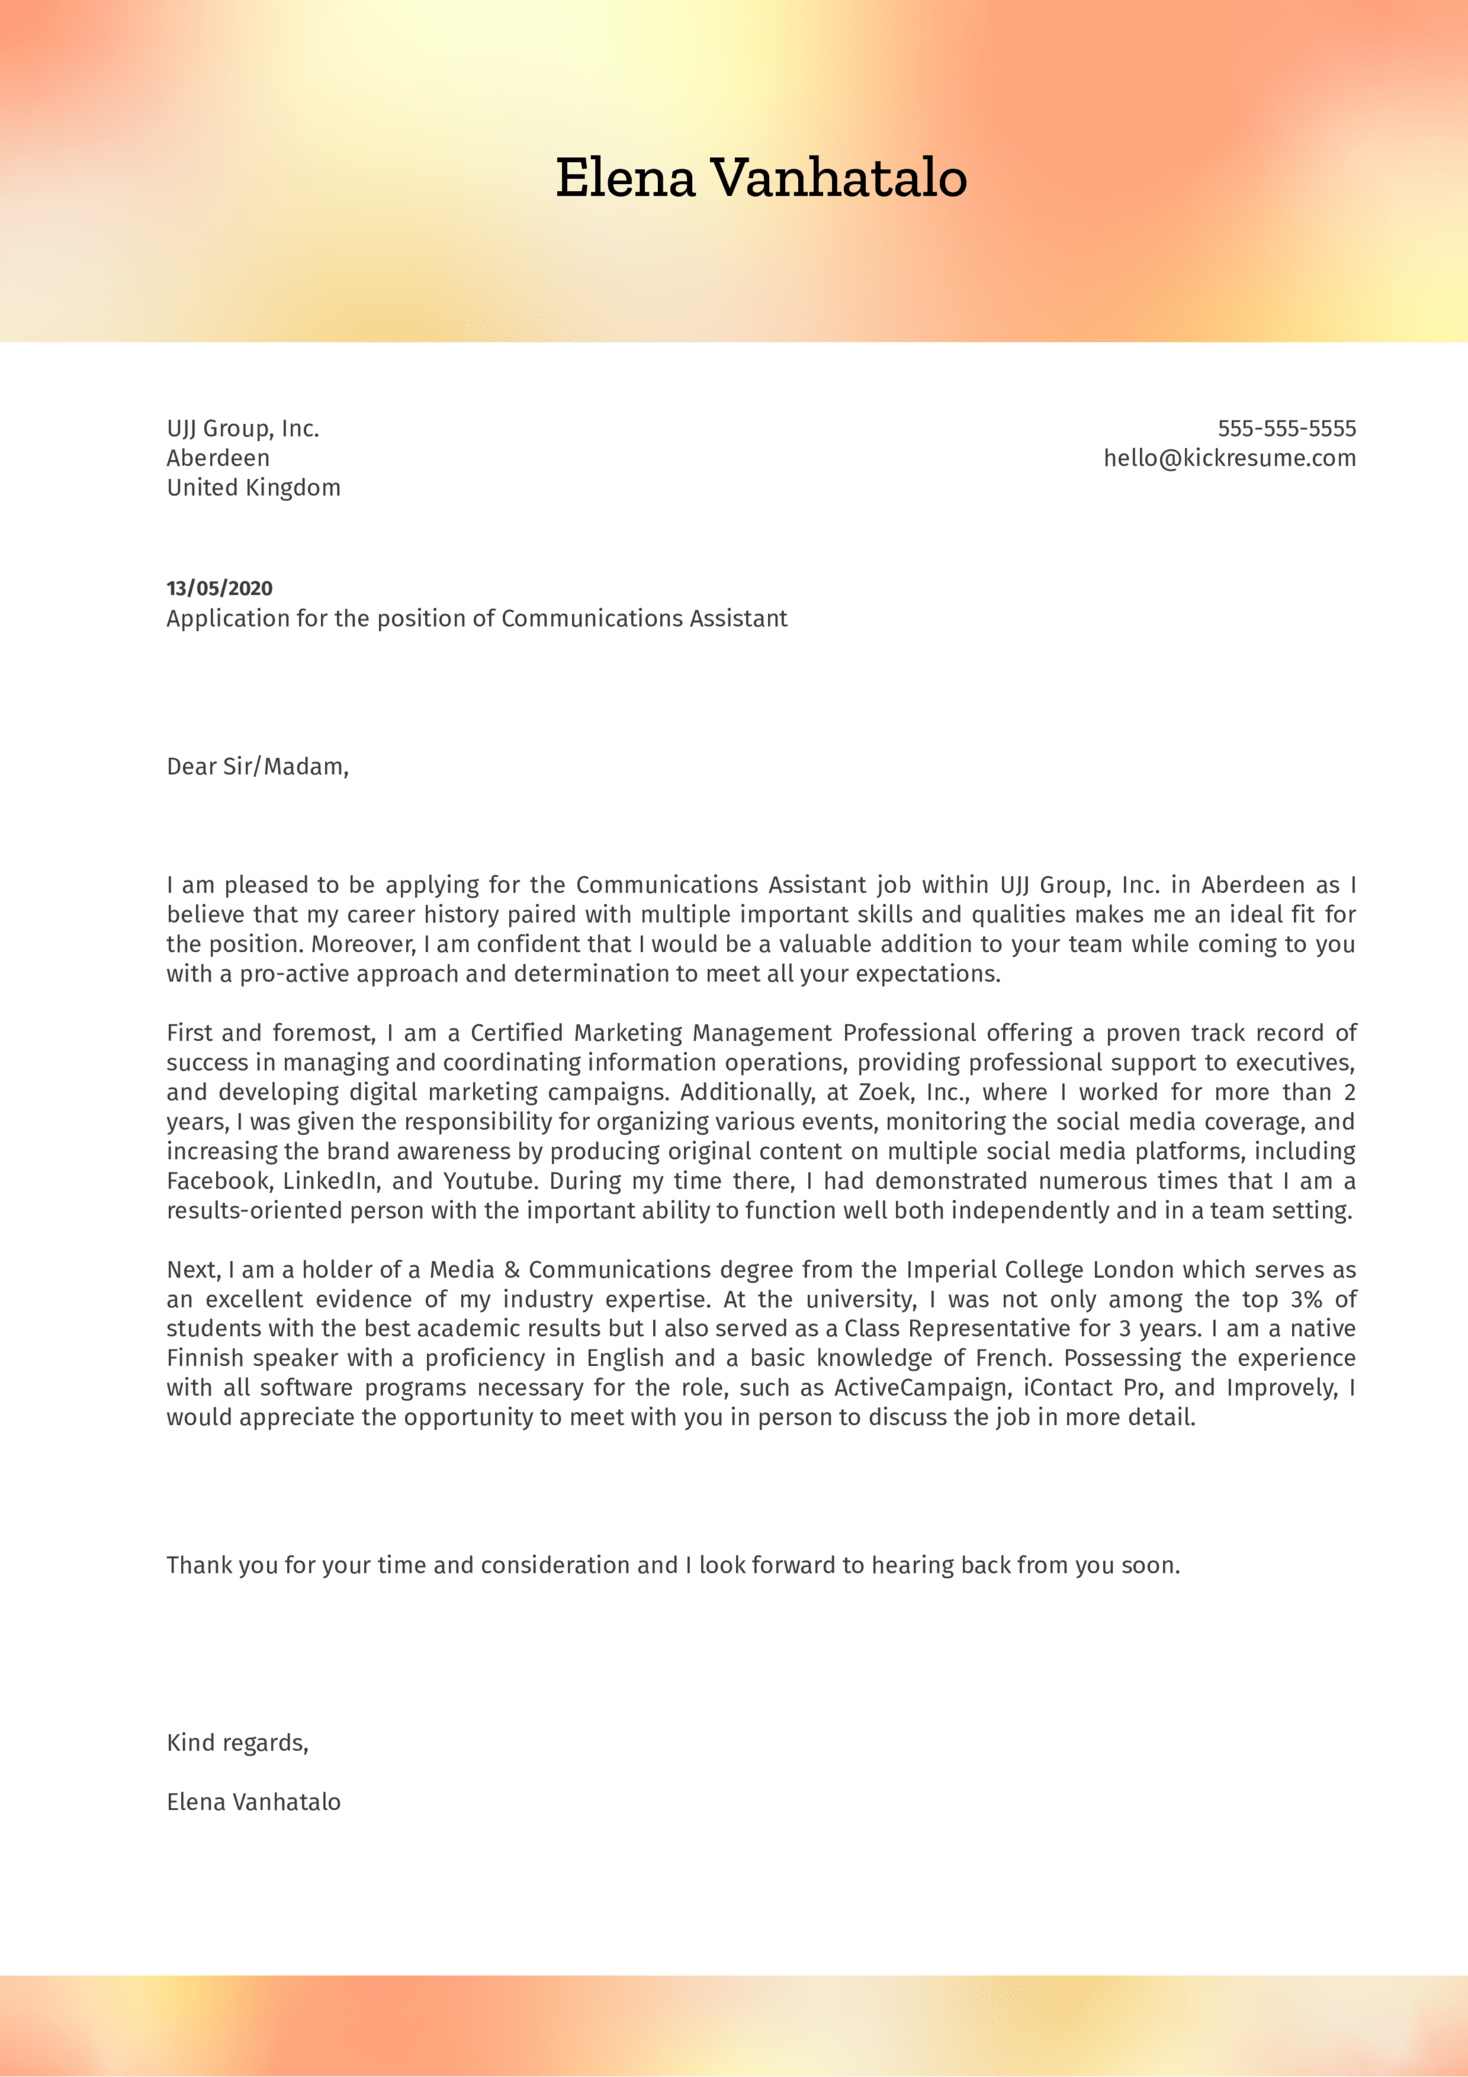 Communications Assistant Cover Letter Example